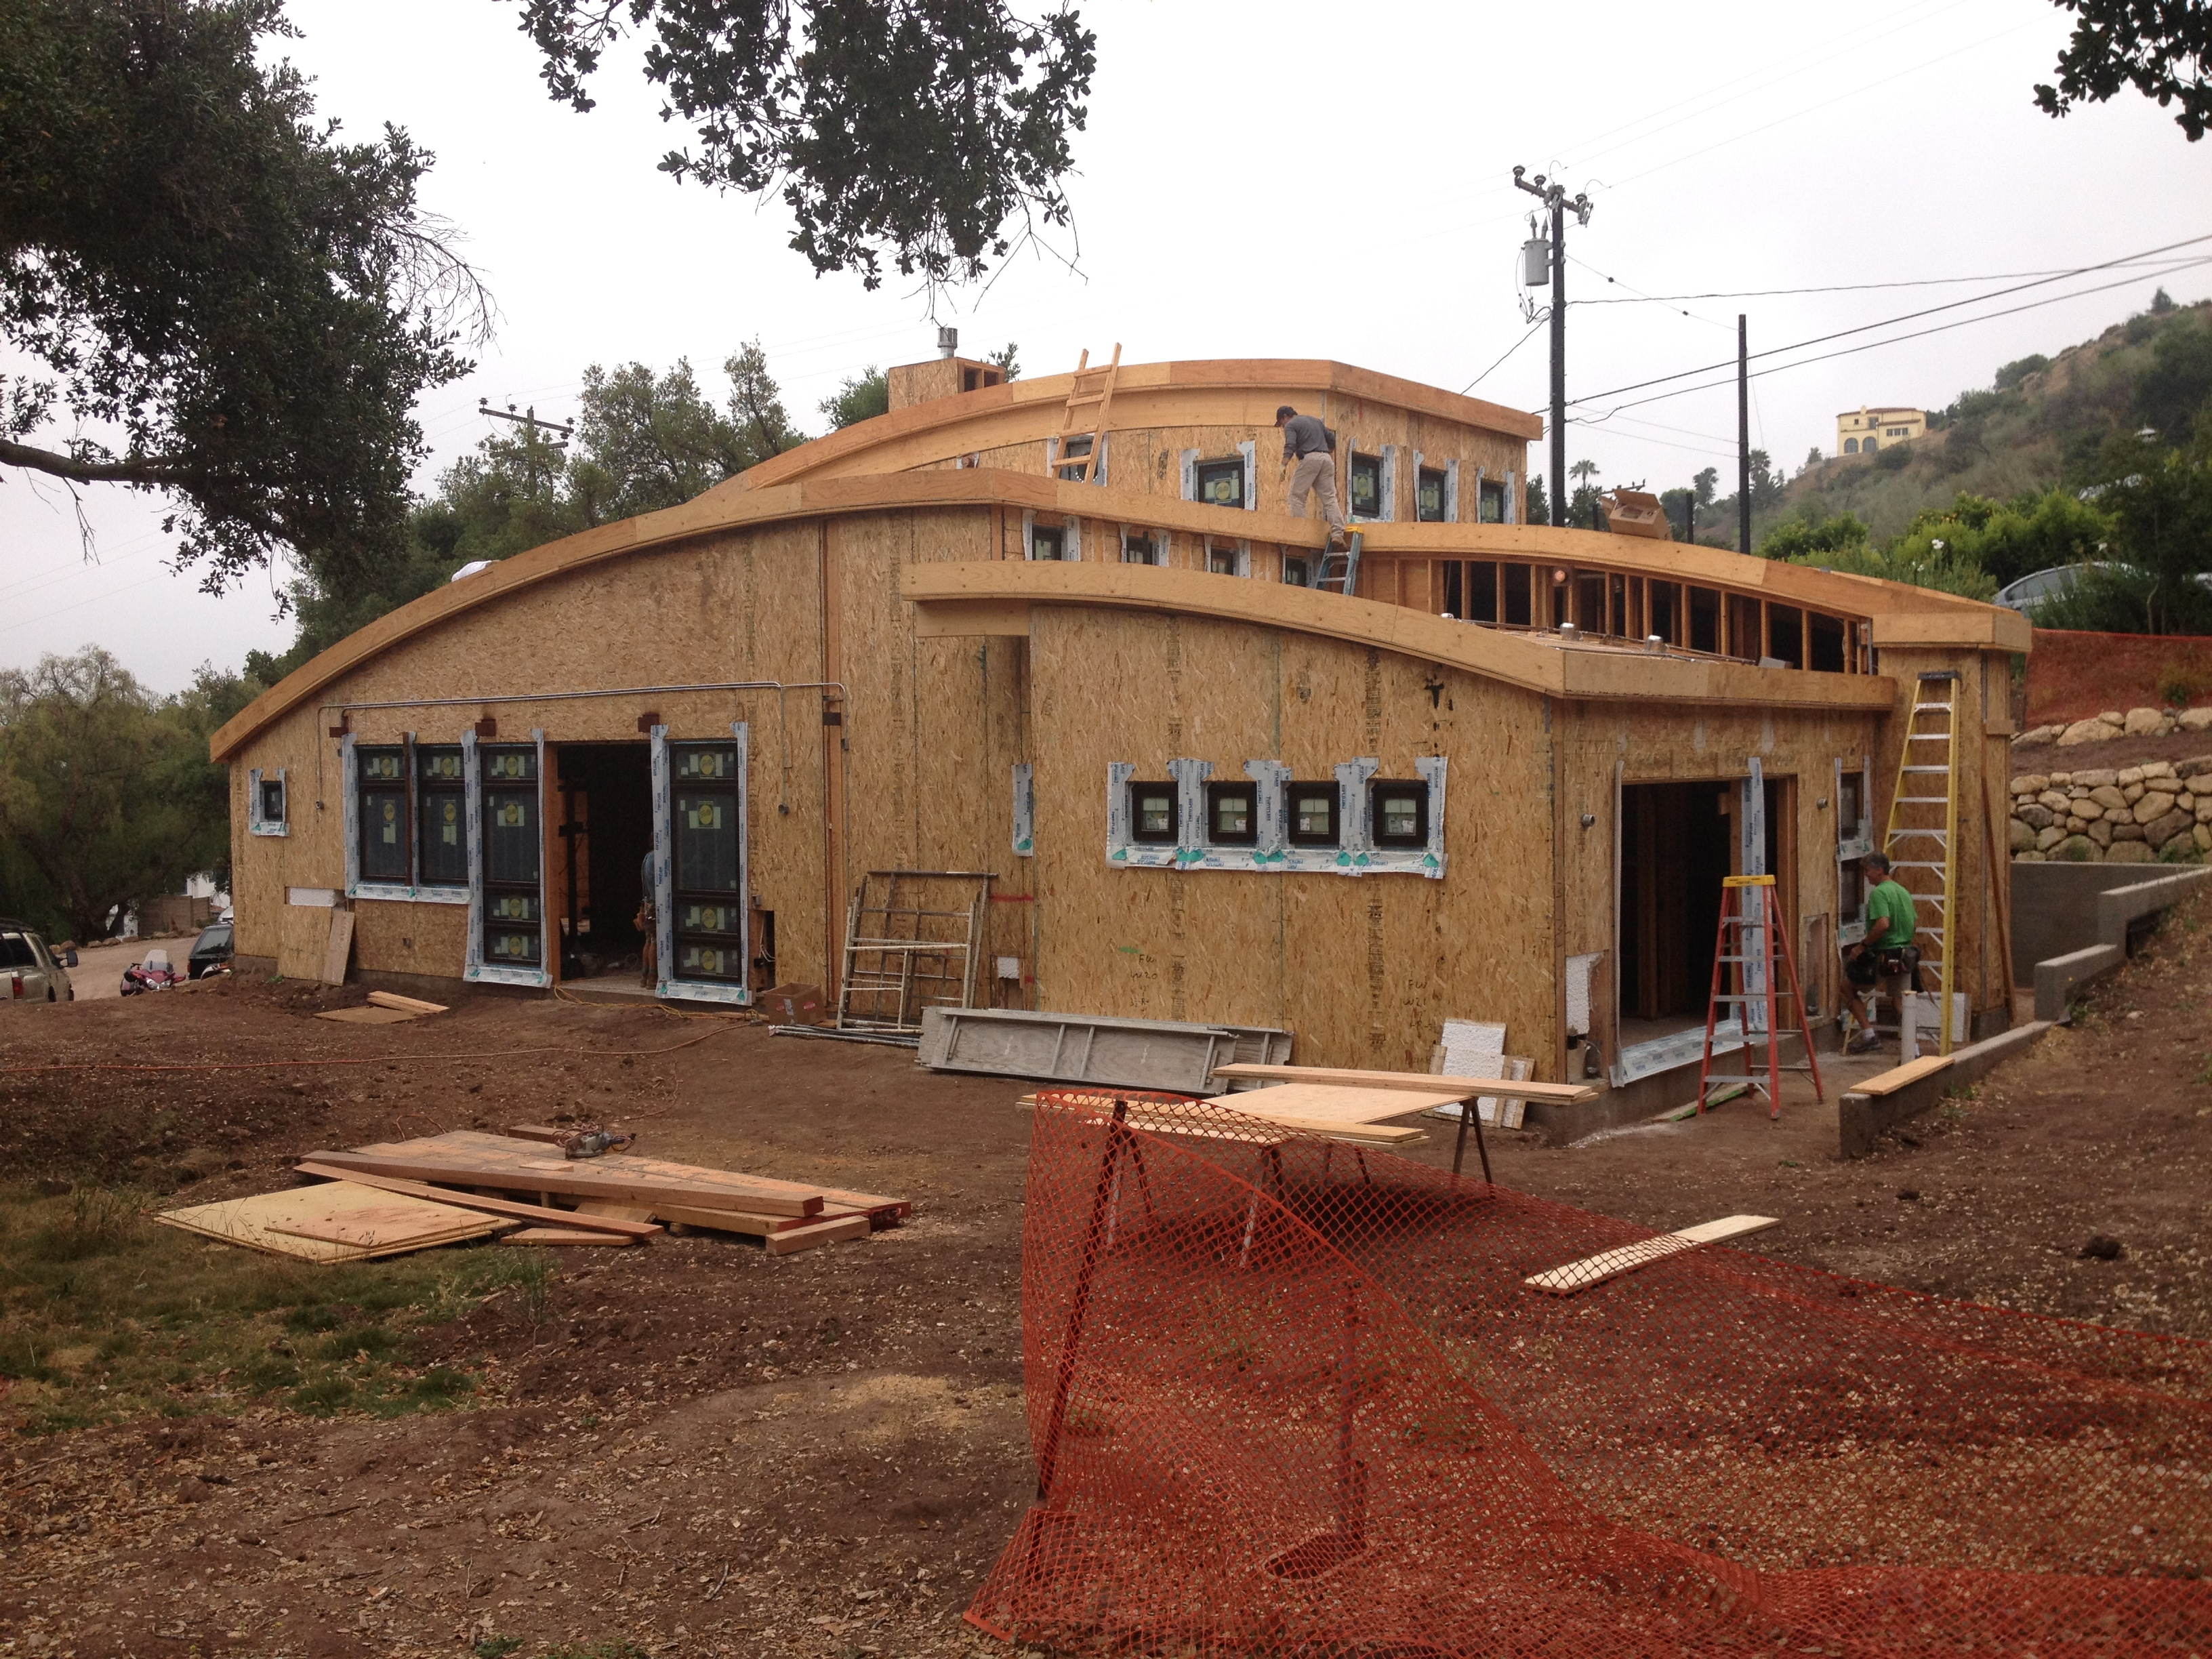 Sip construction premier sips structural insulated panels Sip home construction